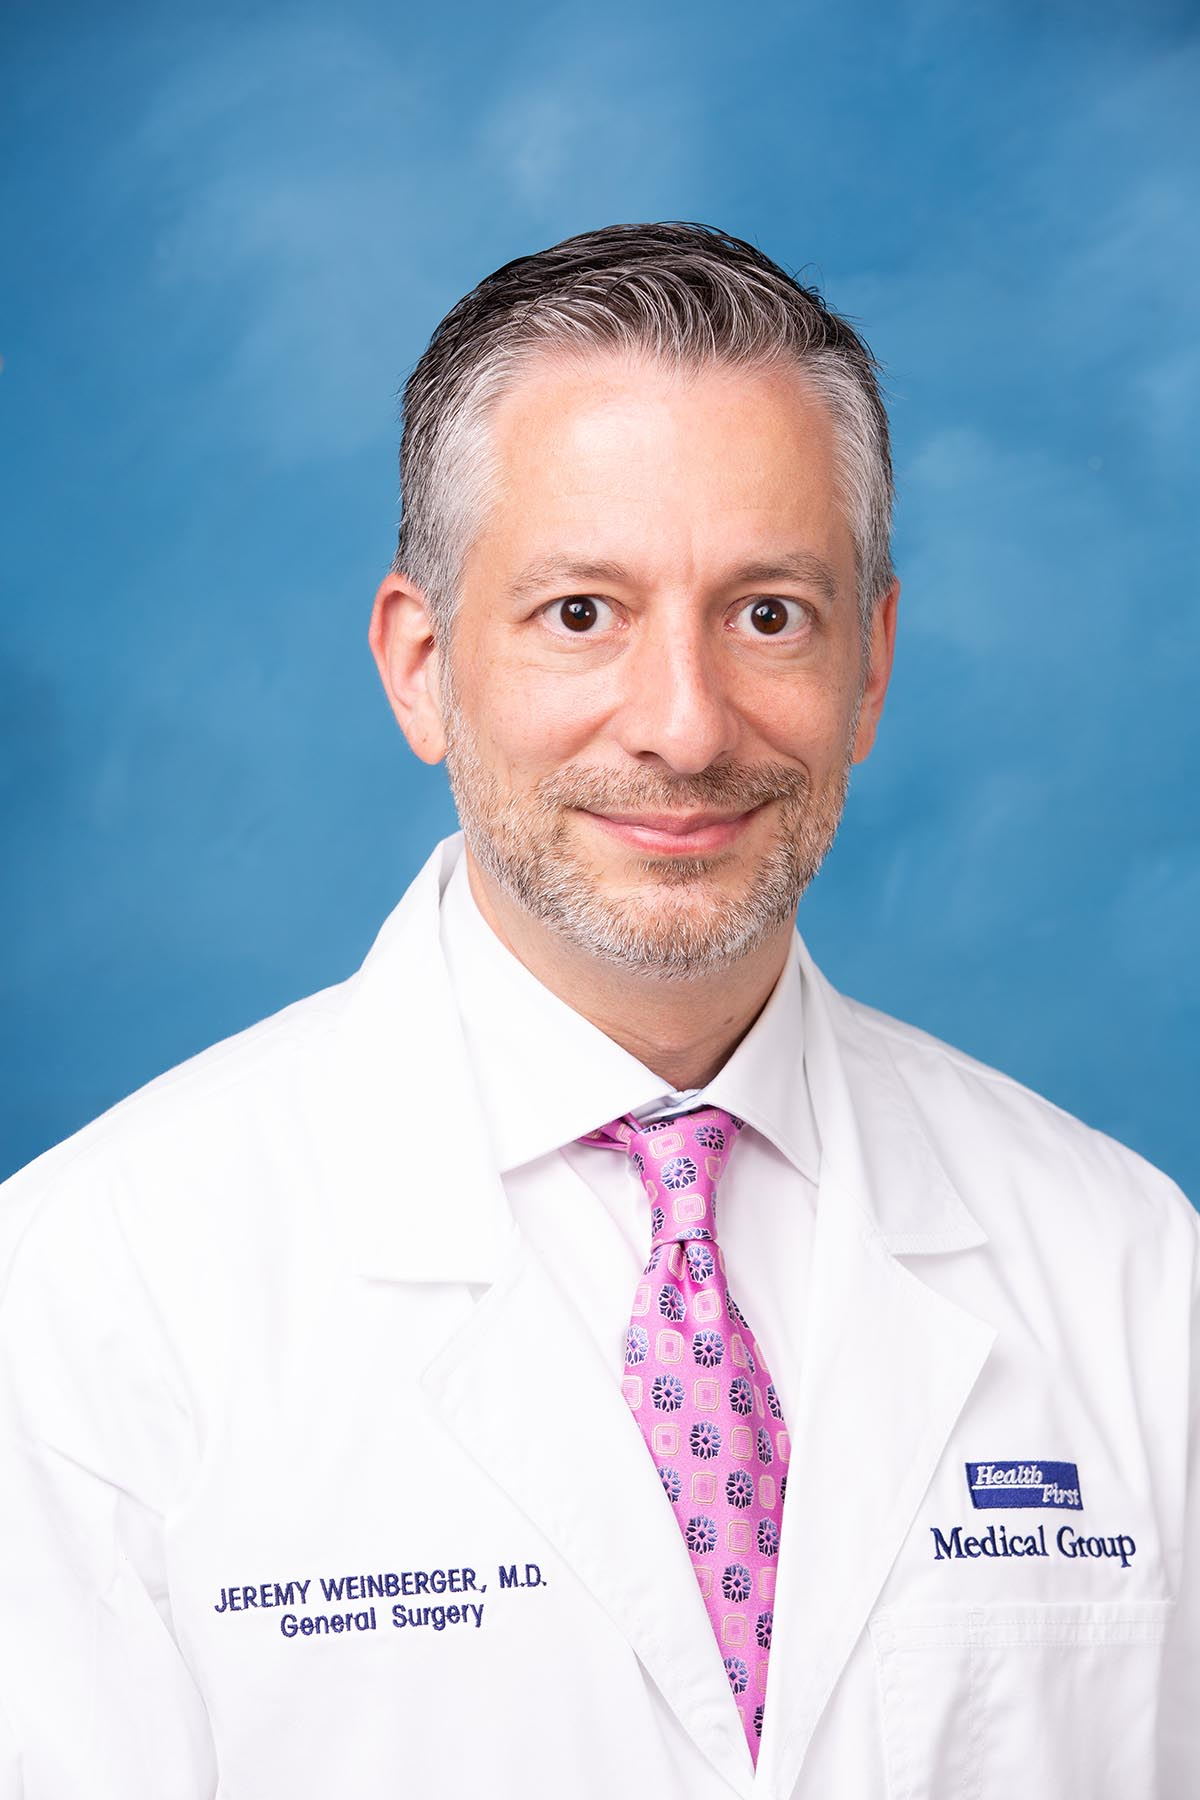 Jeremy S. Weinberger, MD